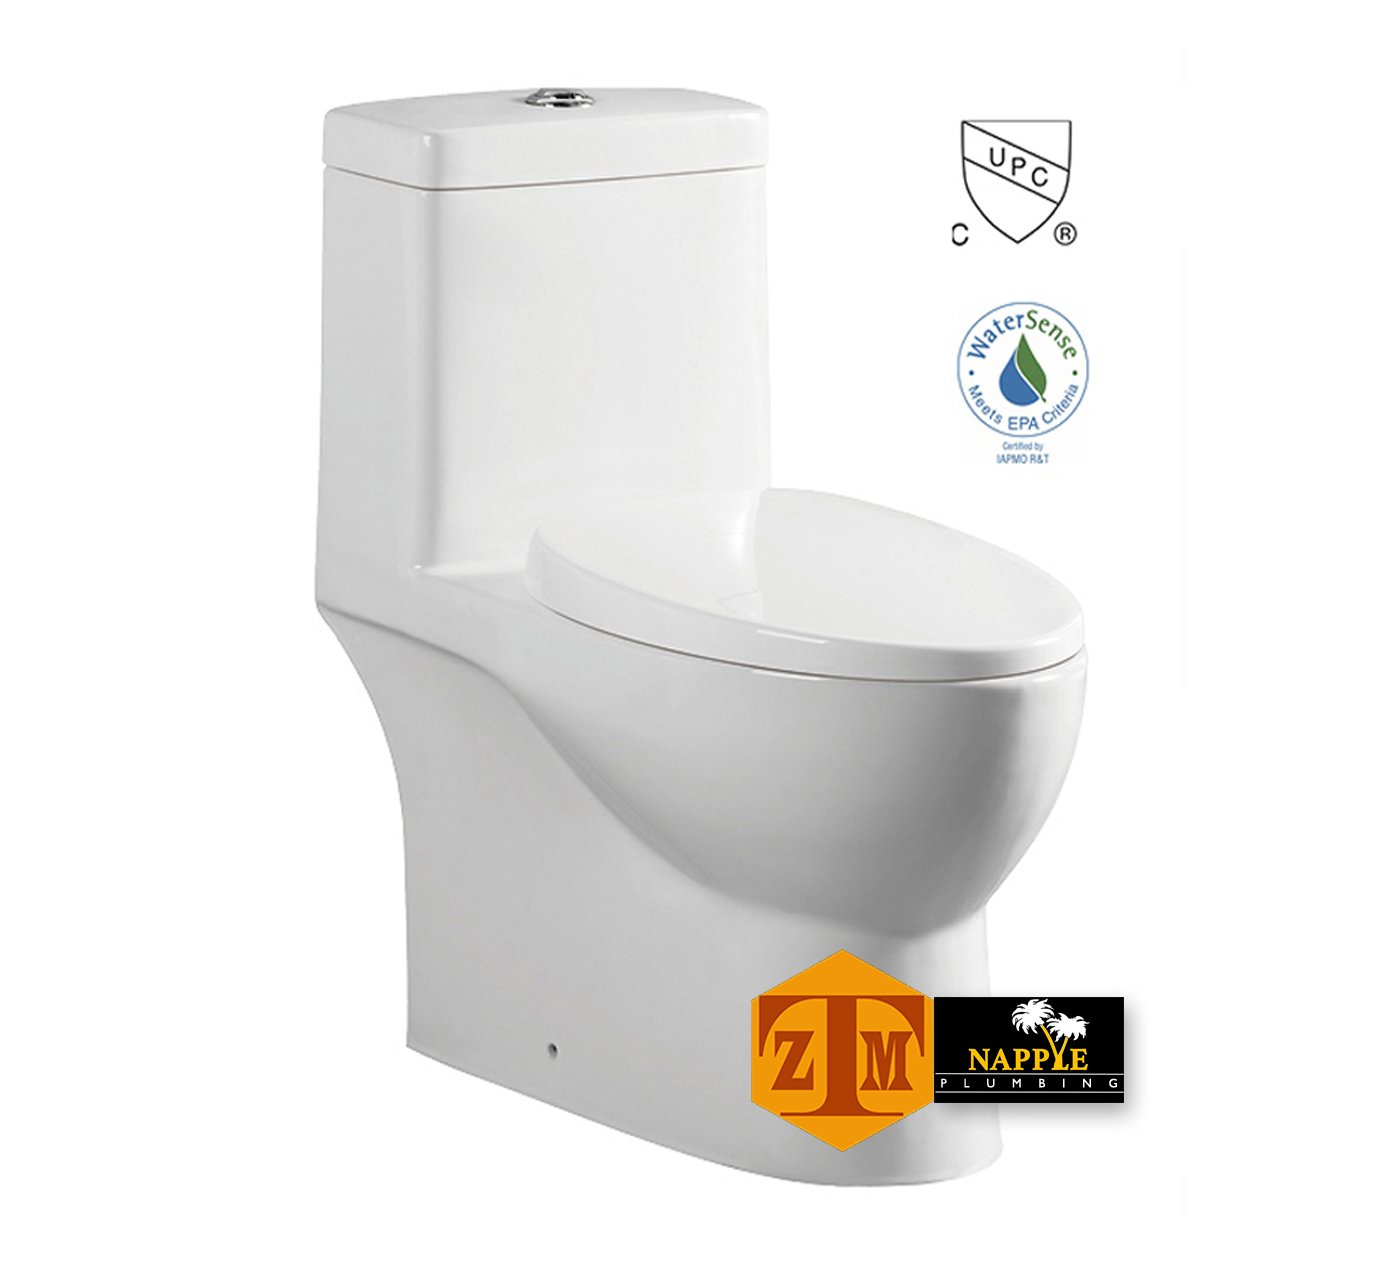 NAMY2137P Luxury SIPHONIC White Porcelain One-Piece Construction Toilet, With Round Seat and Comfort Height, A Siphonic High Efficiency Eco-Friendly Action w/ Dual Flush 1.6/1.0GPF, UPC Certified